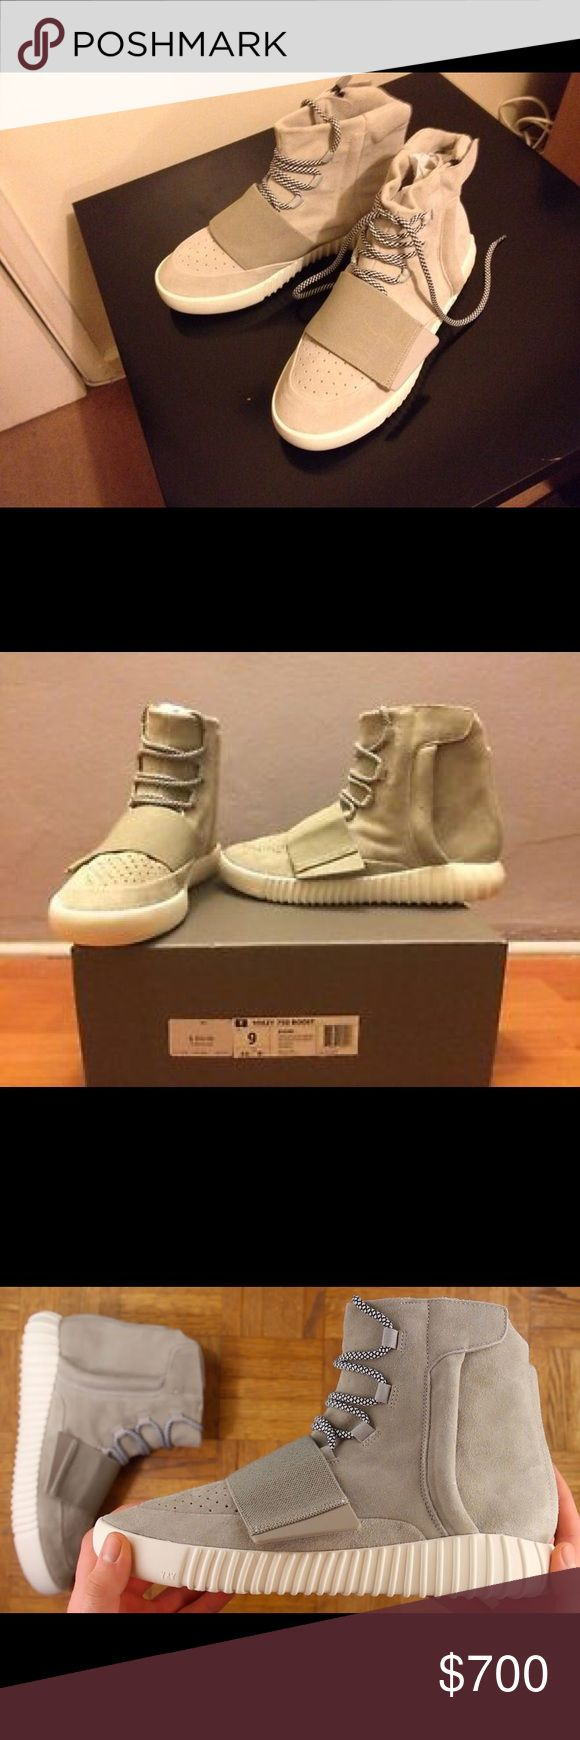 Brand new yeezy boost 350 grey size 9 These are brand new yeezy 750 size 9 from footlocker ONLY SELLING THROUGH 🅿️ay 🅿️al PRICE CAN BE NEGOTIATED! Yeezy Shoes Sneakers